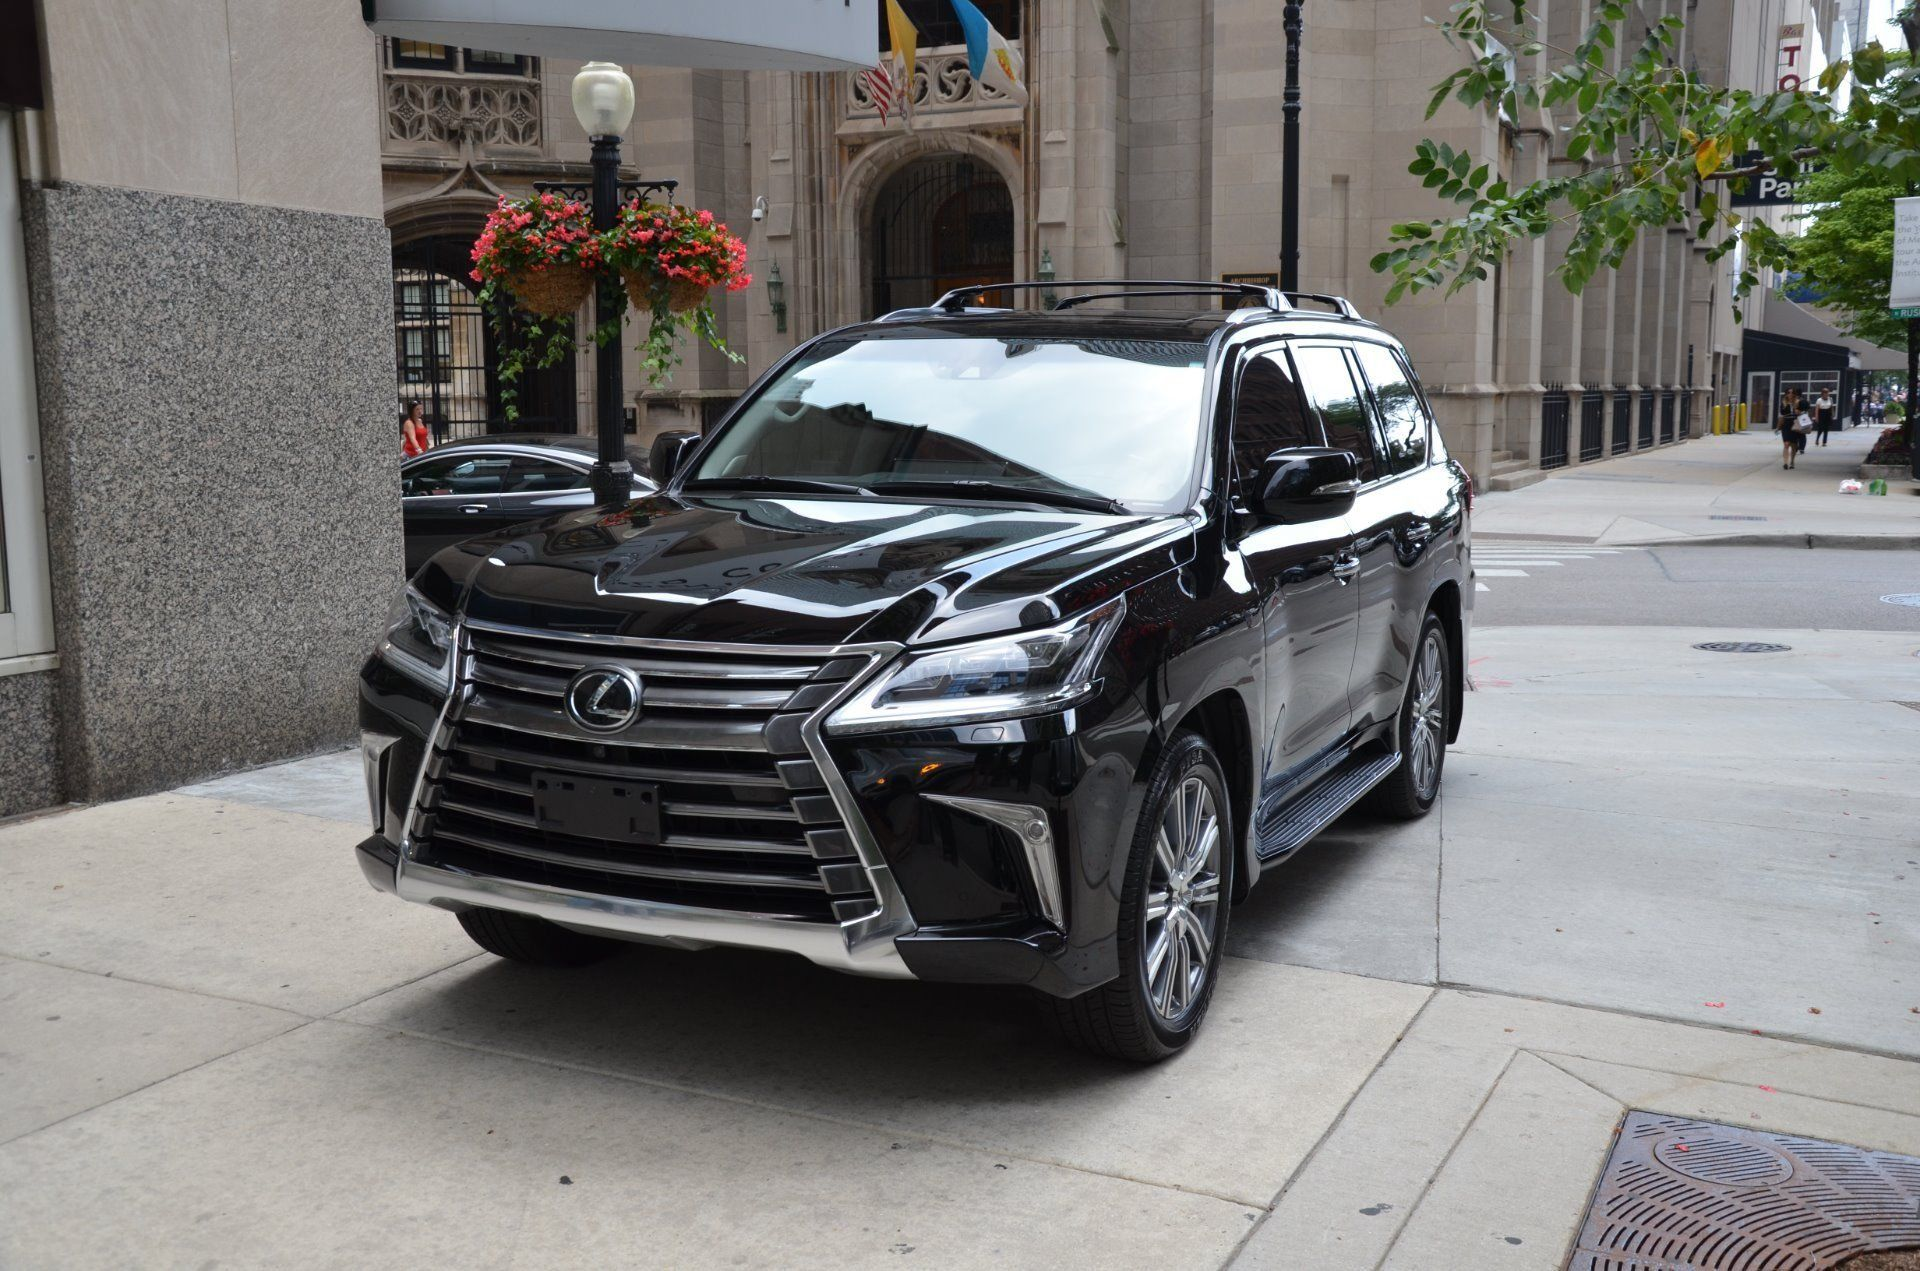 2020 Lexus Lx 570 Release Date And Concept In 2020 With Images Lexus Lexus Dealer Lexus Es